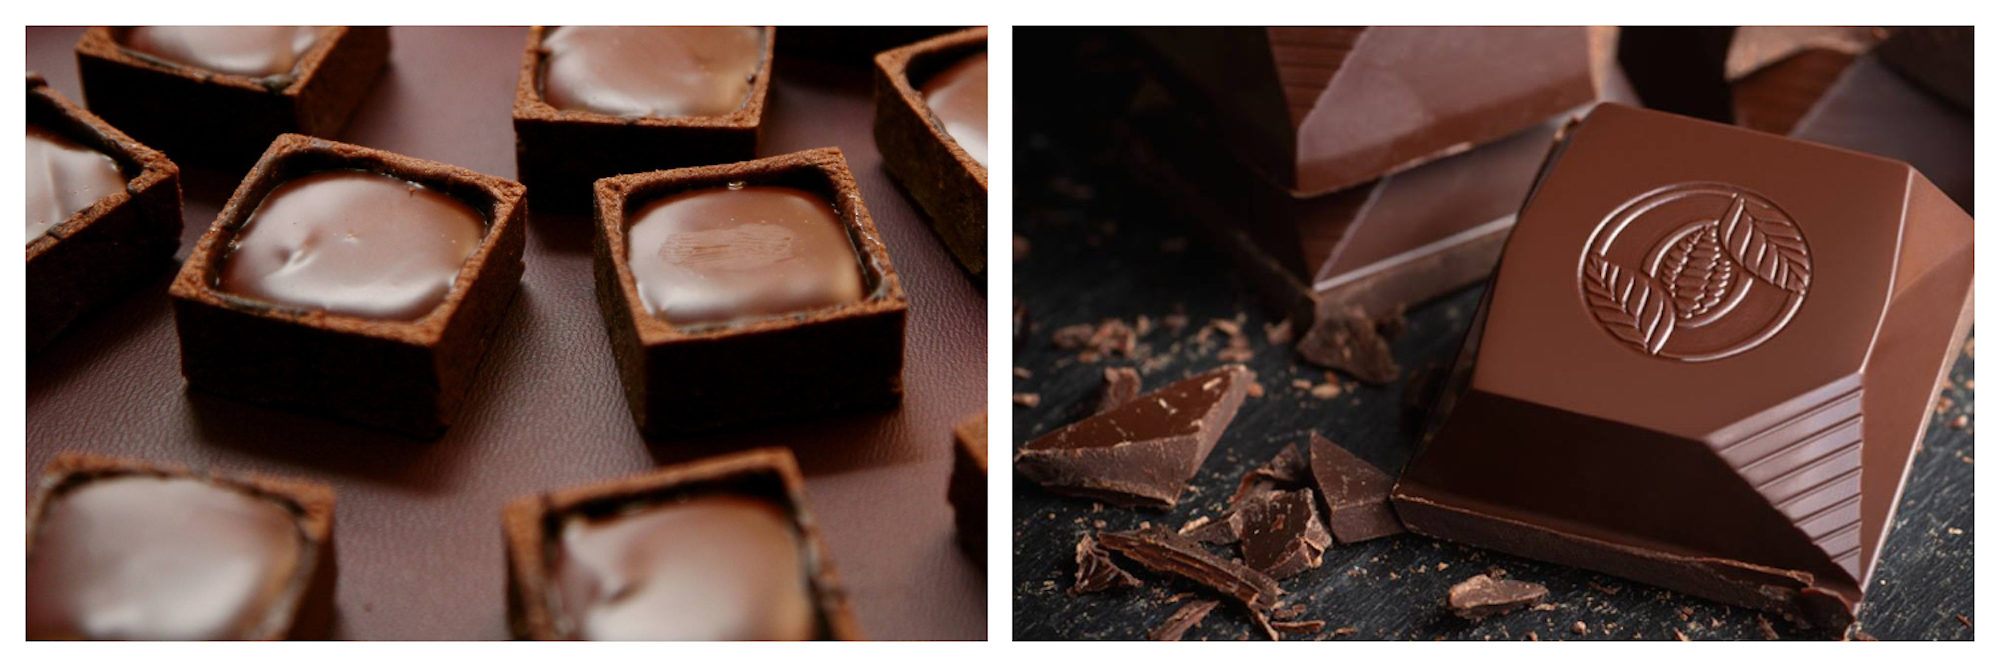 Creamy chocolate squares (left) and milk chocolate (right) at the Salon du Chocolat in Paris in October.